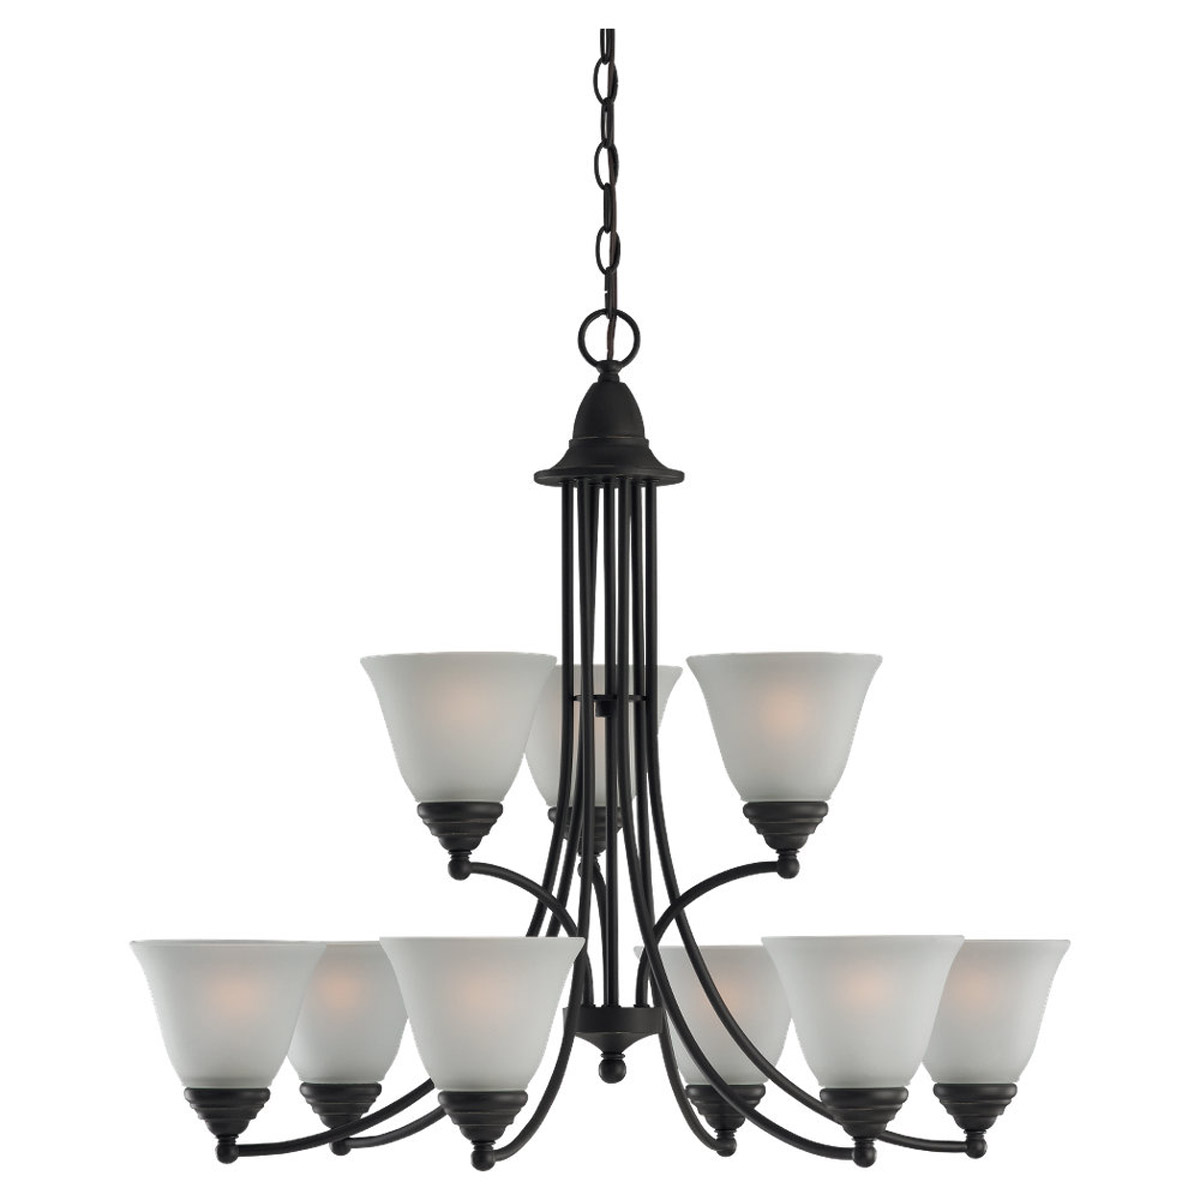 Sea Gull Lighting Albany 9 Light Chandelier in Heirloom Bronze 31577-782